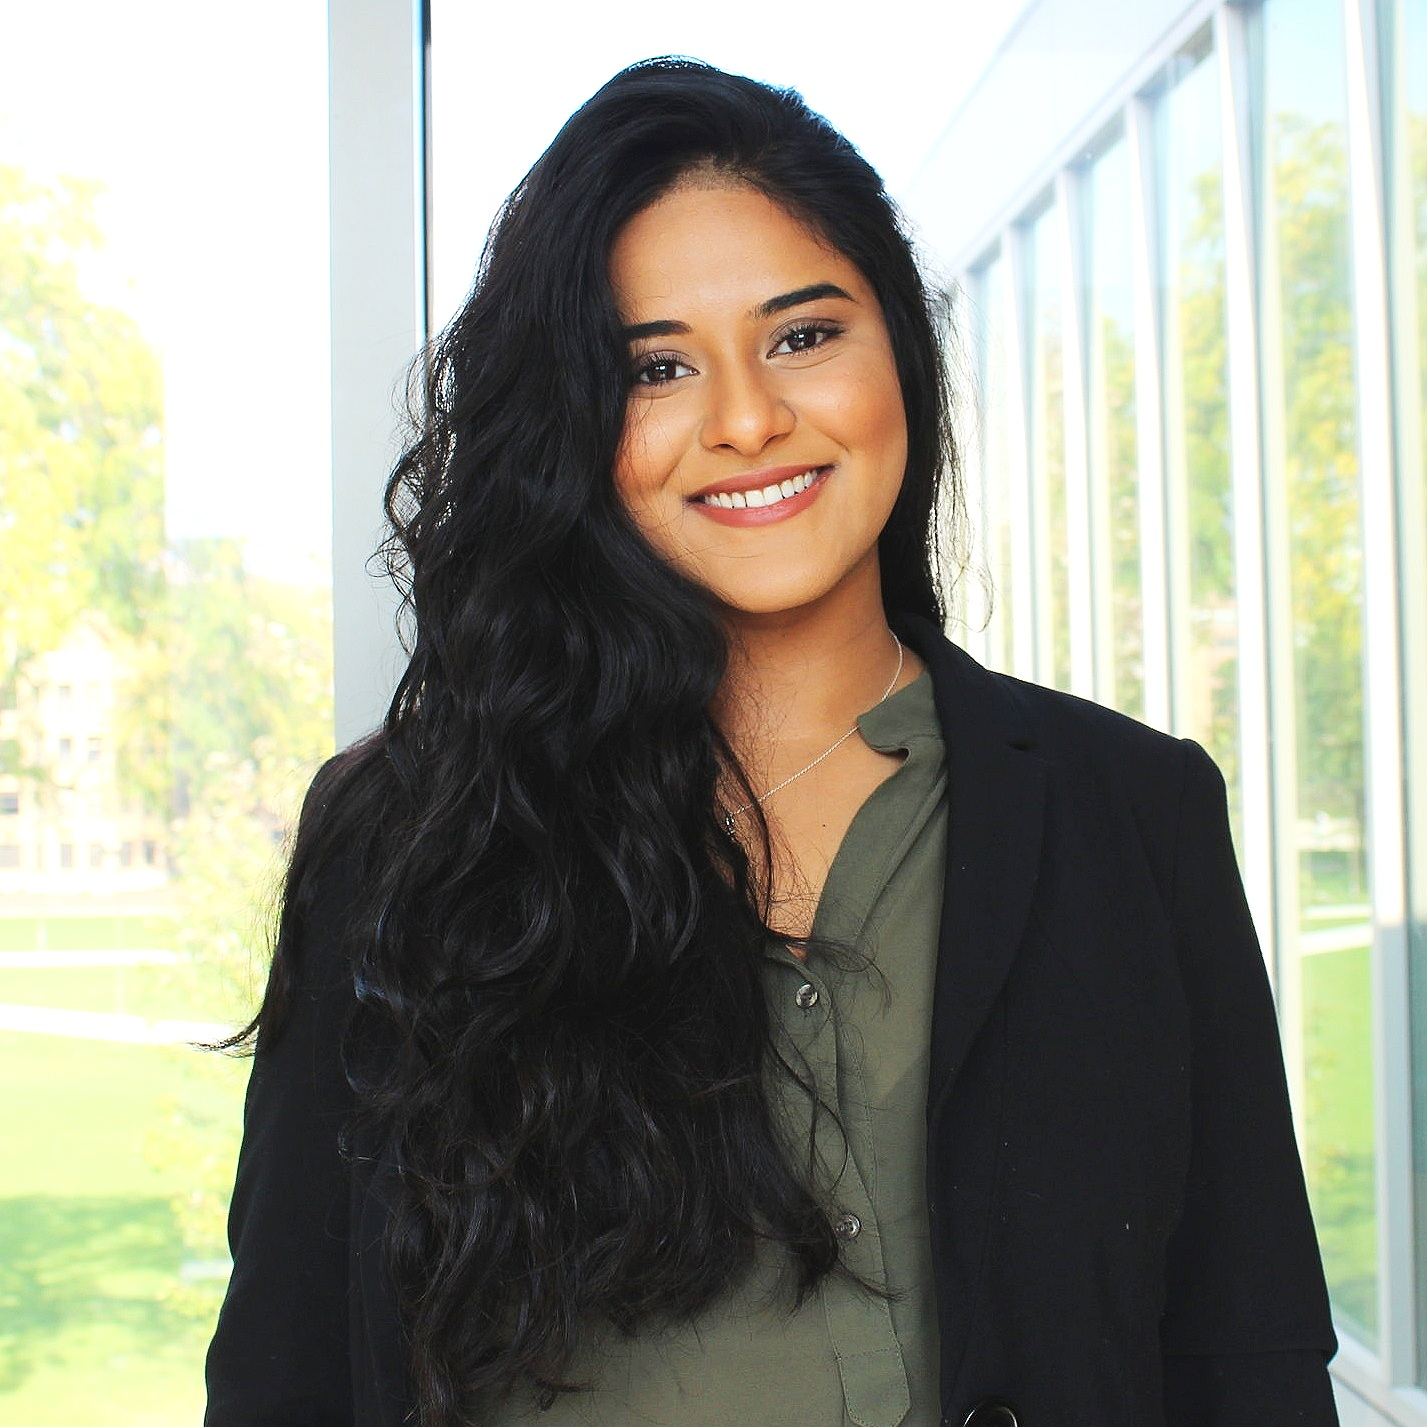 Amanda Rasathurai   Marketing  I'm a senior marketing major that's concentrating on product development and innovation. I hope to one day create a product that benefits the lives of many! I have an interest for world cultures & food, beauty, technology, and much more!